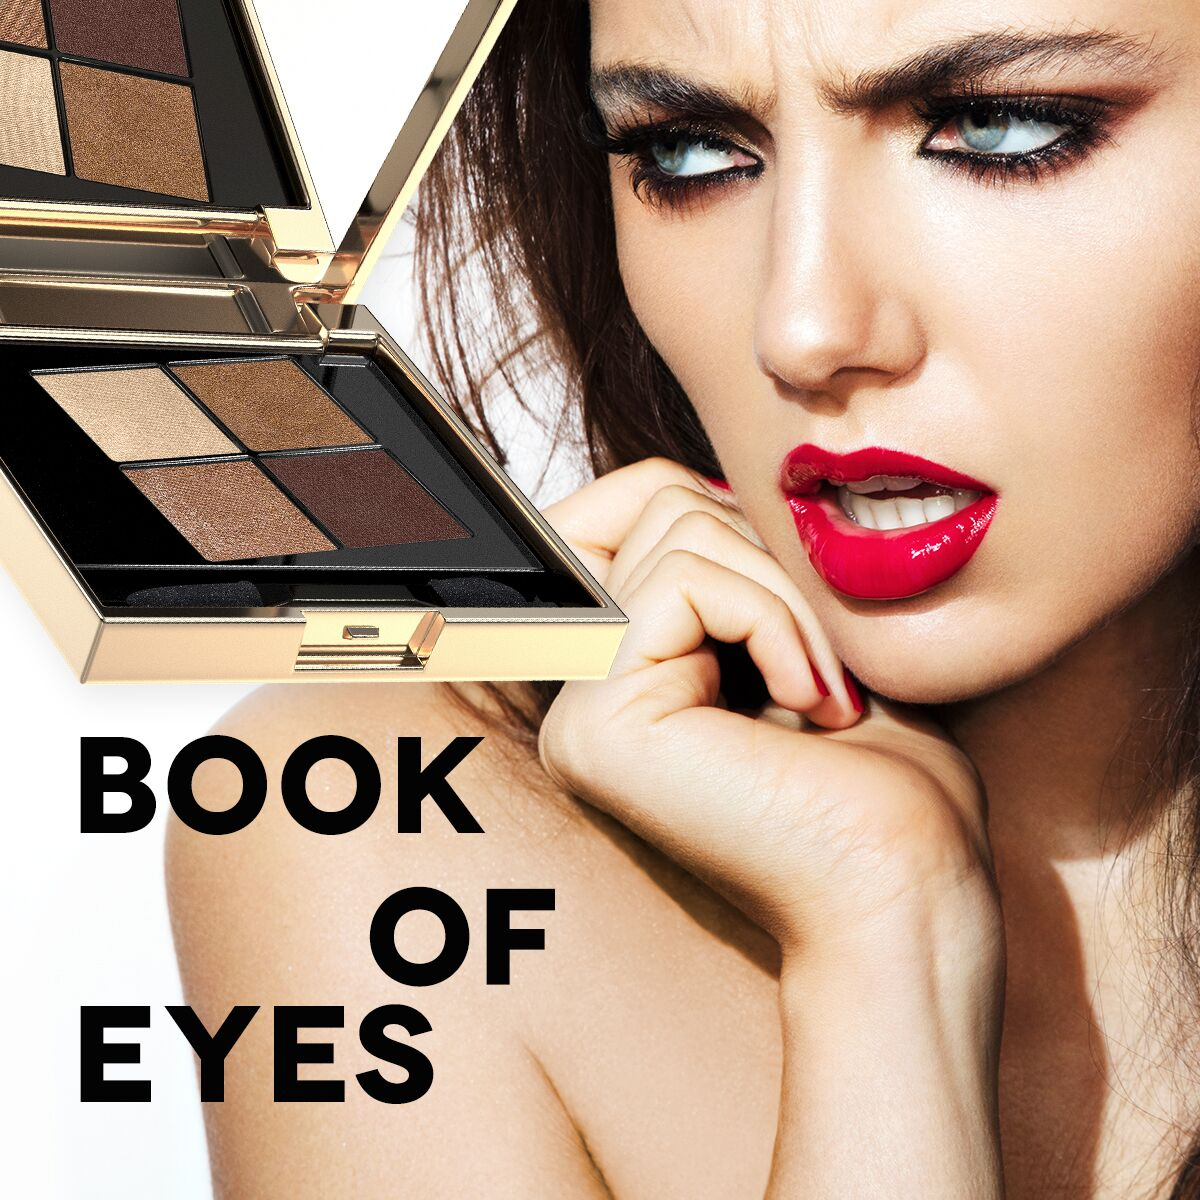 Smith & Cult Book of Eyes